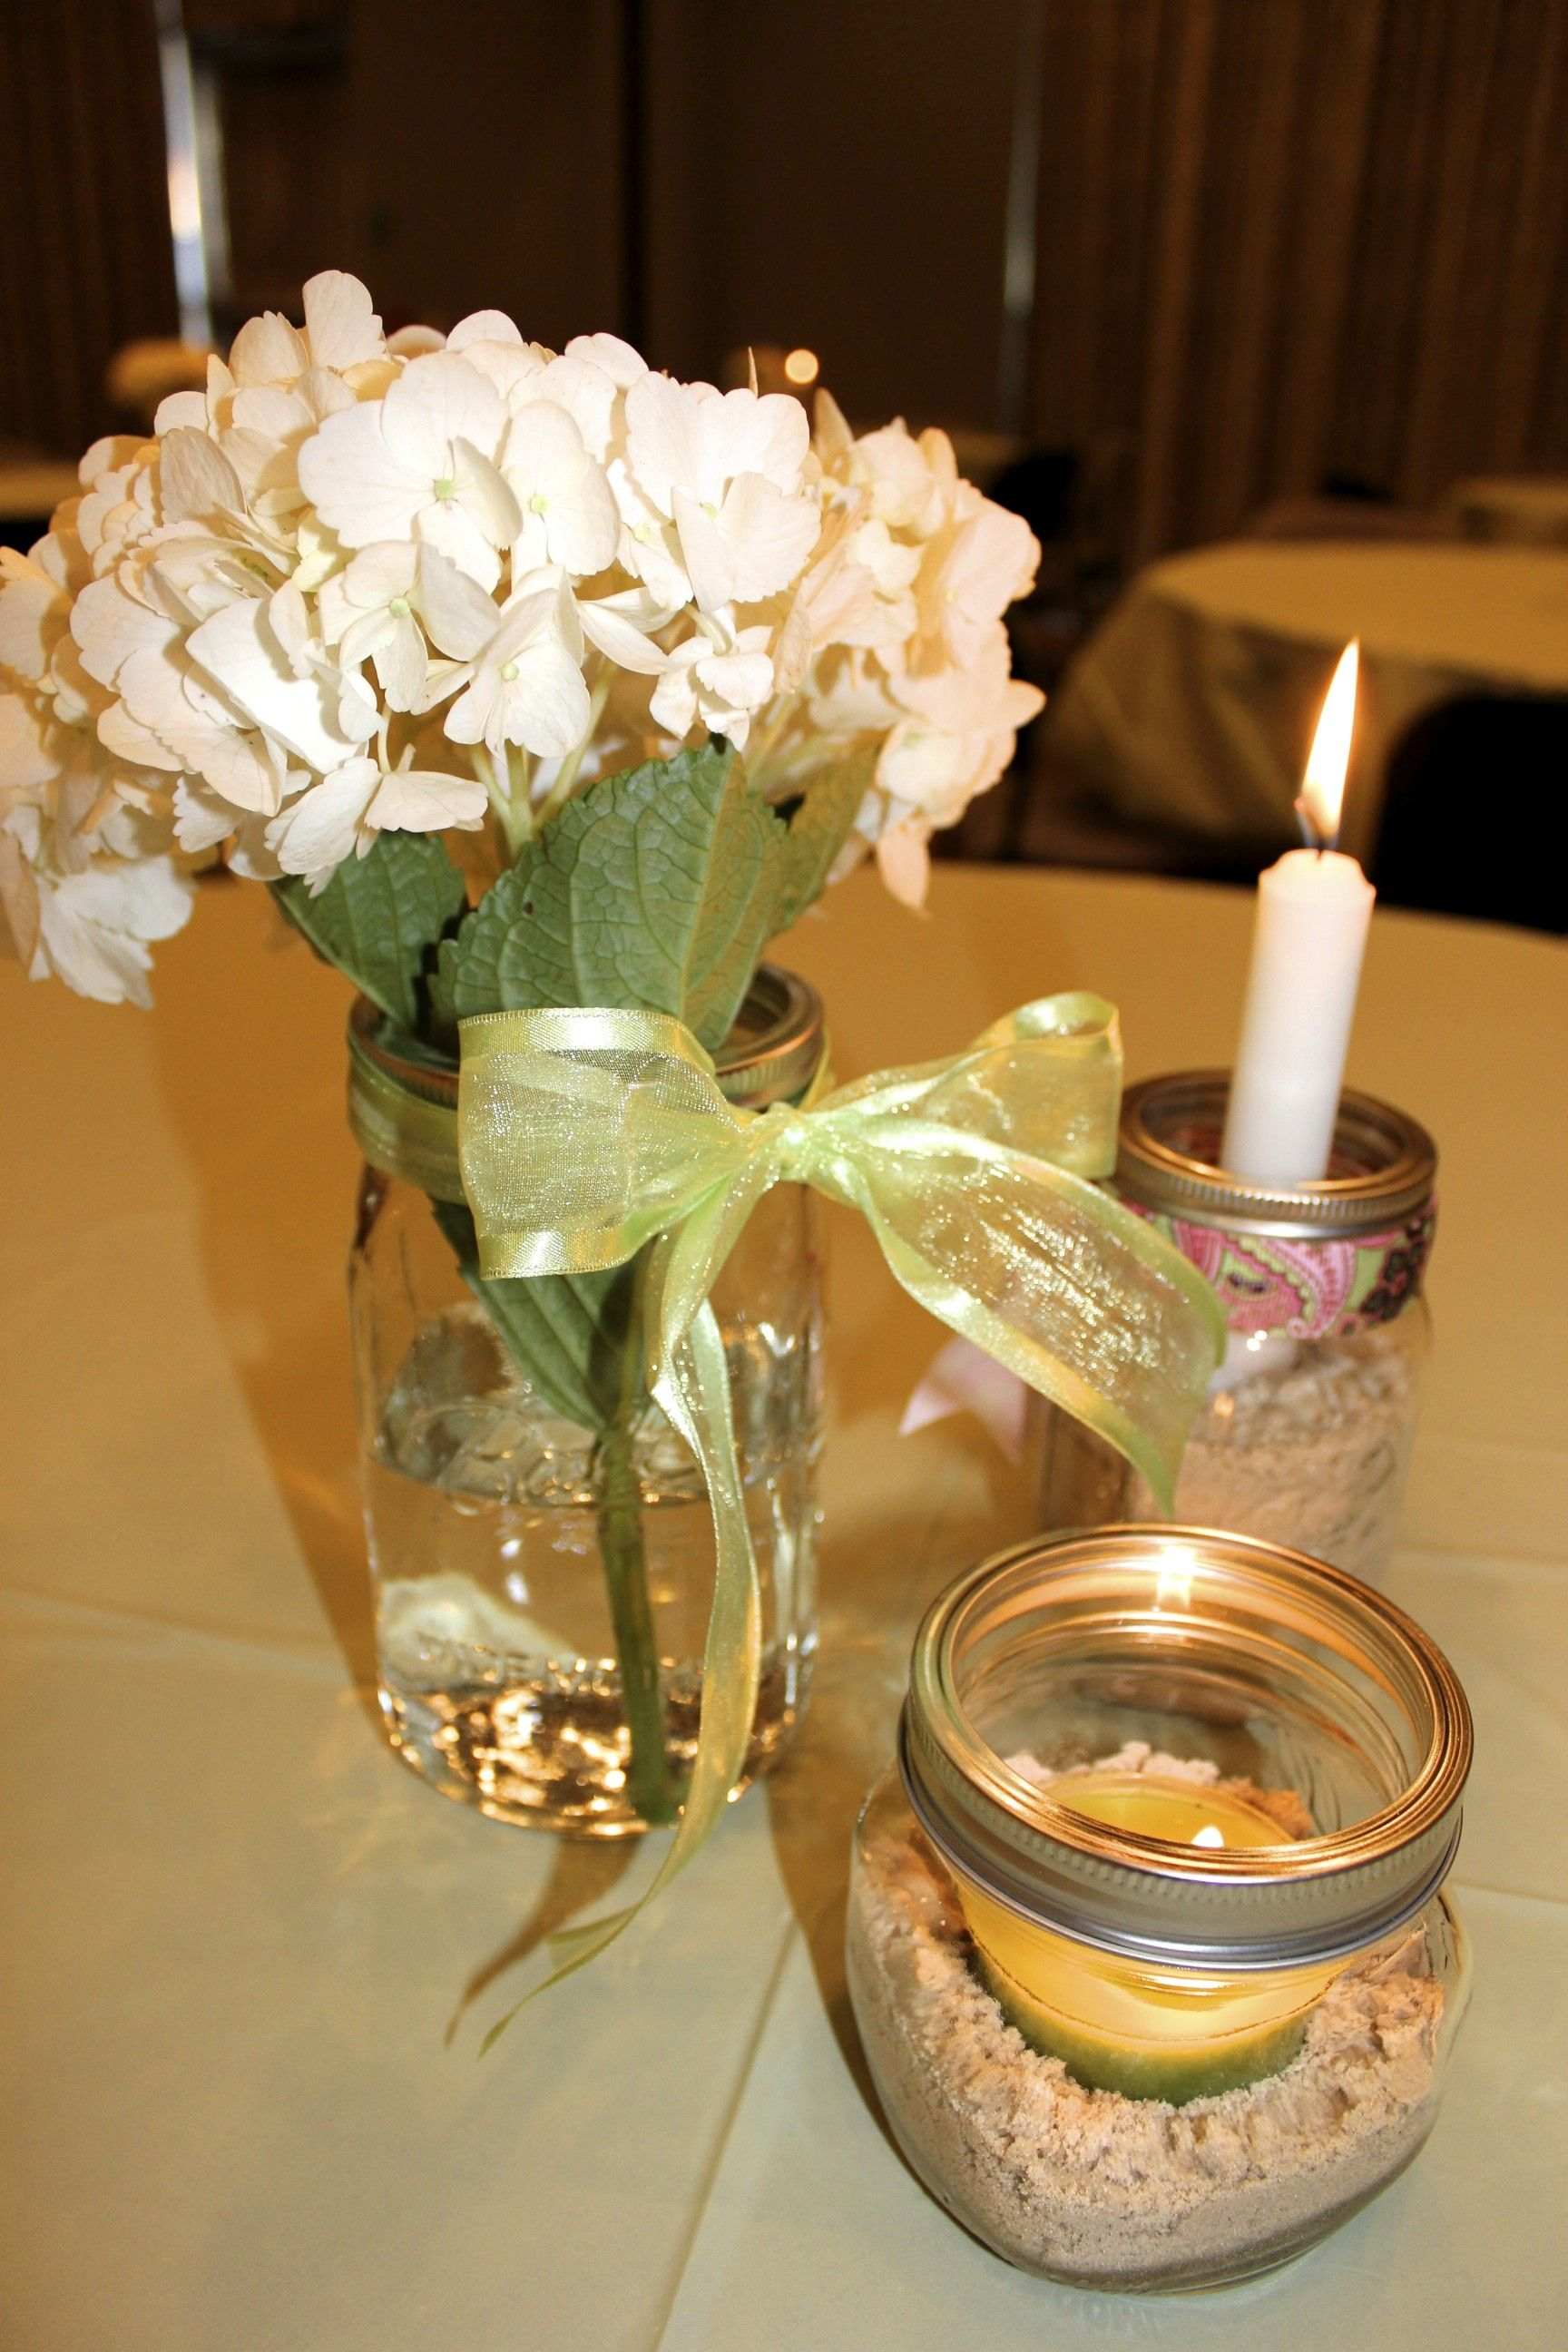 Simple Elegant Party Decorations For Adults Centerpieces I Made Rh Com 50th Birthday